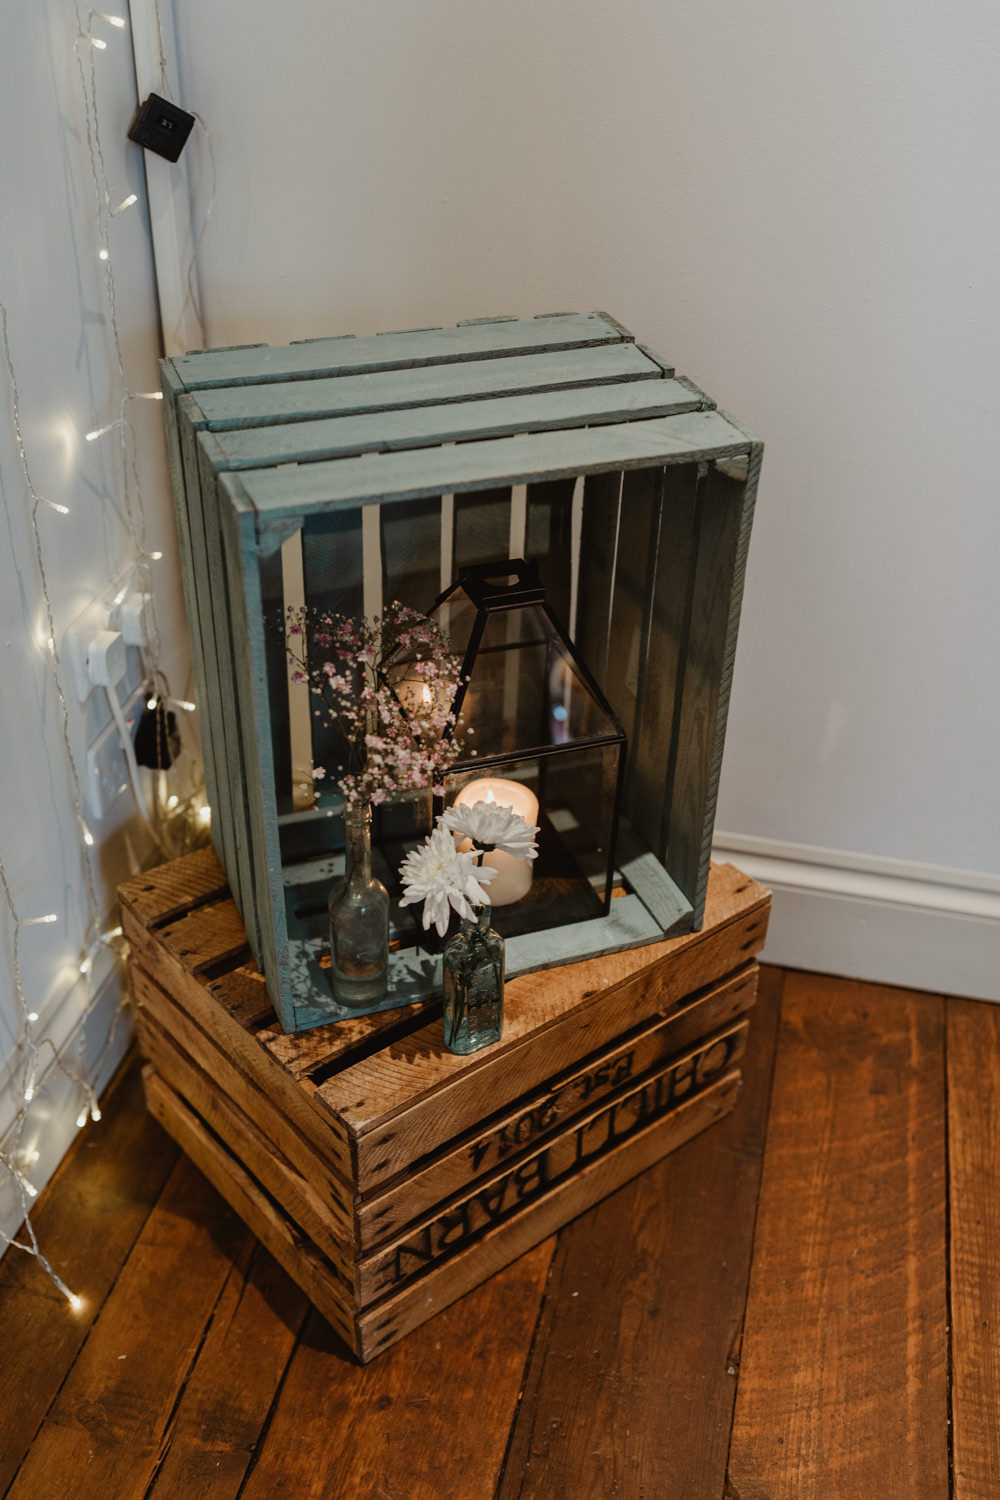 Wooden Crate Decor Candles Flowers Chilli Barn Wedding Stevie Jay Photography